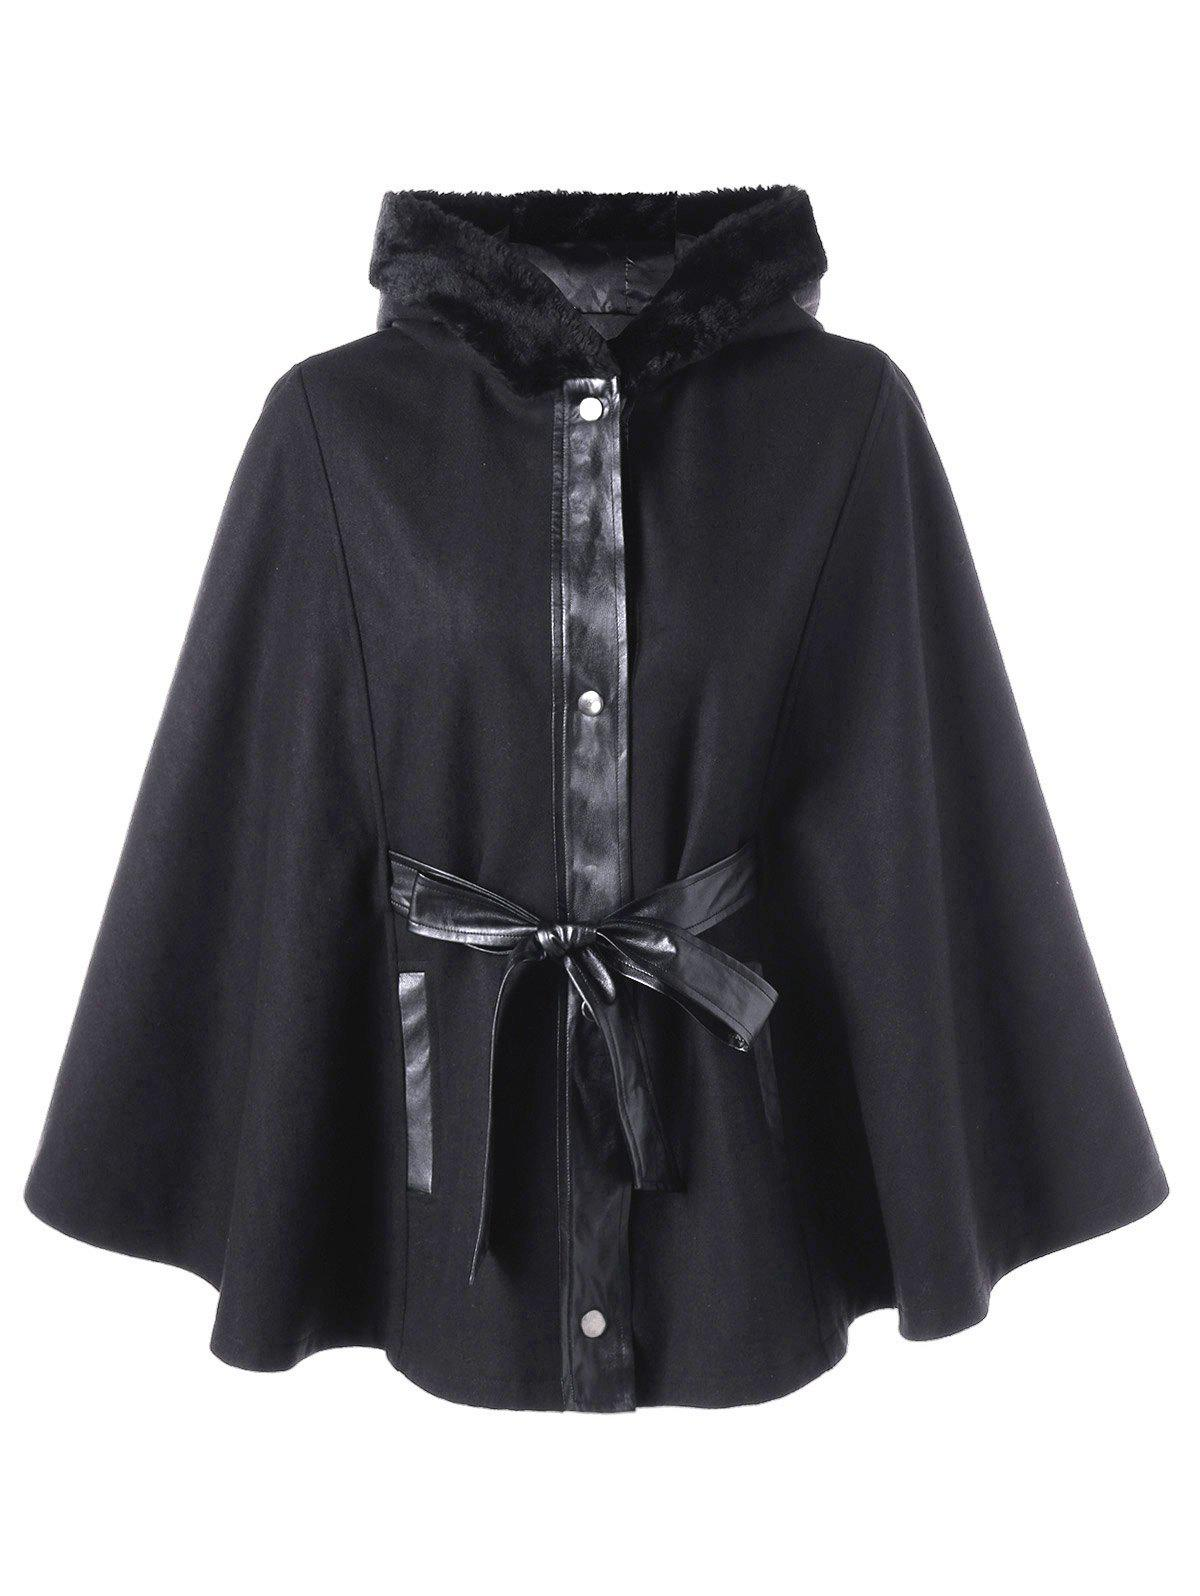 Plus Size Hooded Swing Coat with Tie BeltWOMEN<br><br>Size: XL; Color: BLACK; Clothes Type: Wool &amp; Blends; Material: Polyester; Type: Bat Sleeved; Shirt Length: Long; Sleeve Length: Full; Collar: Hooded; Pattern Type: Solid; Style: Fashion; Season: Fall,Spring; Weight: 0.9700kg; Package Contents: 1 x Coat;